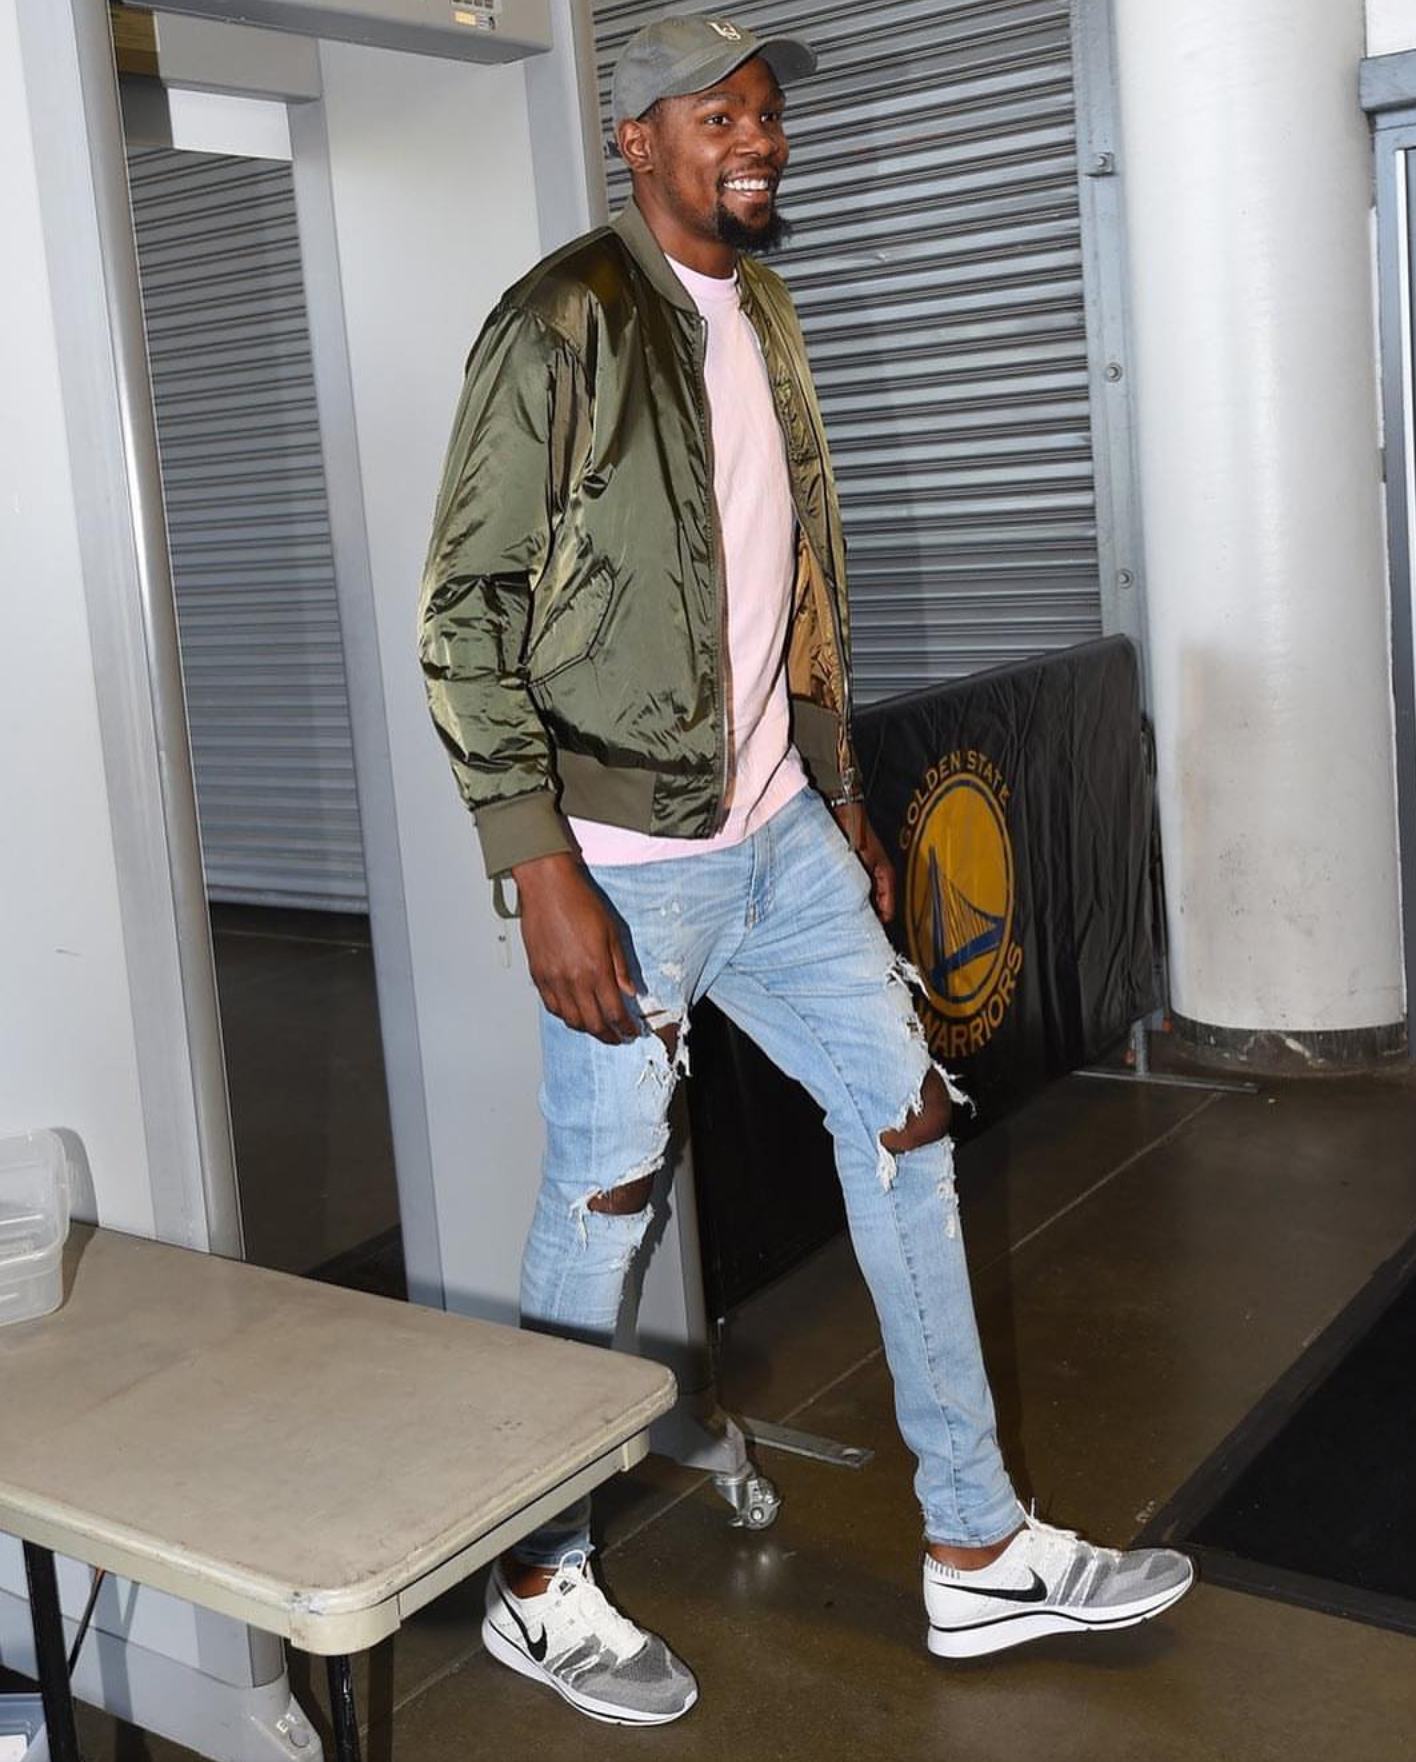 Kevin Durant's Cavs Vs Warriors NBA Finals Game 5 Helmut Lang Jacket, Amiri Jeans, and Nike Flyknit Trainer